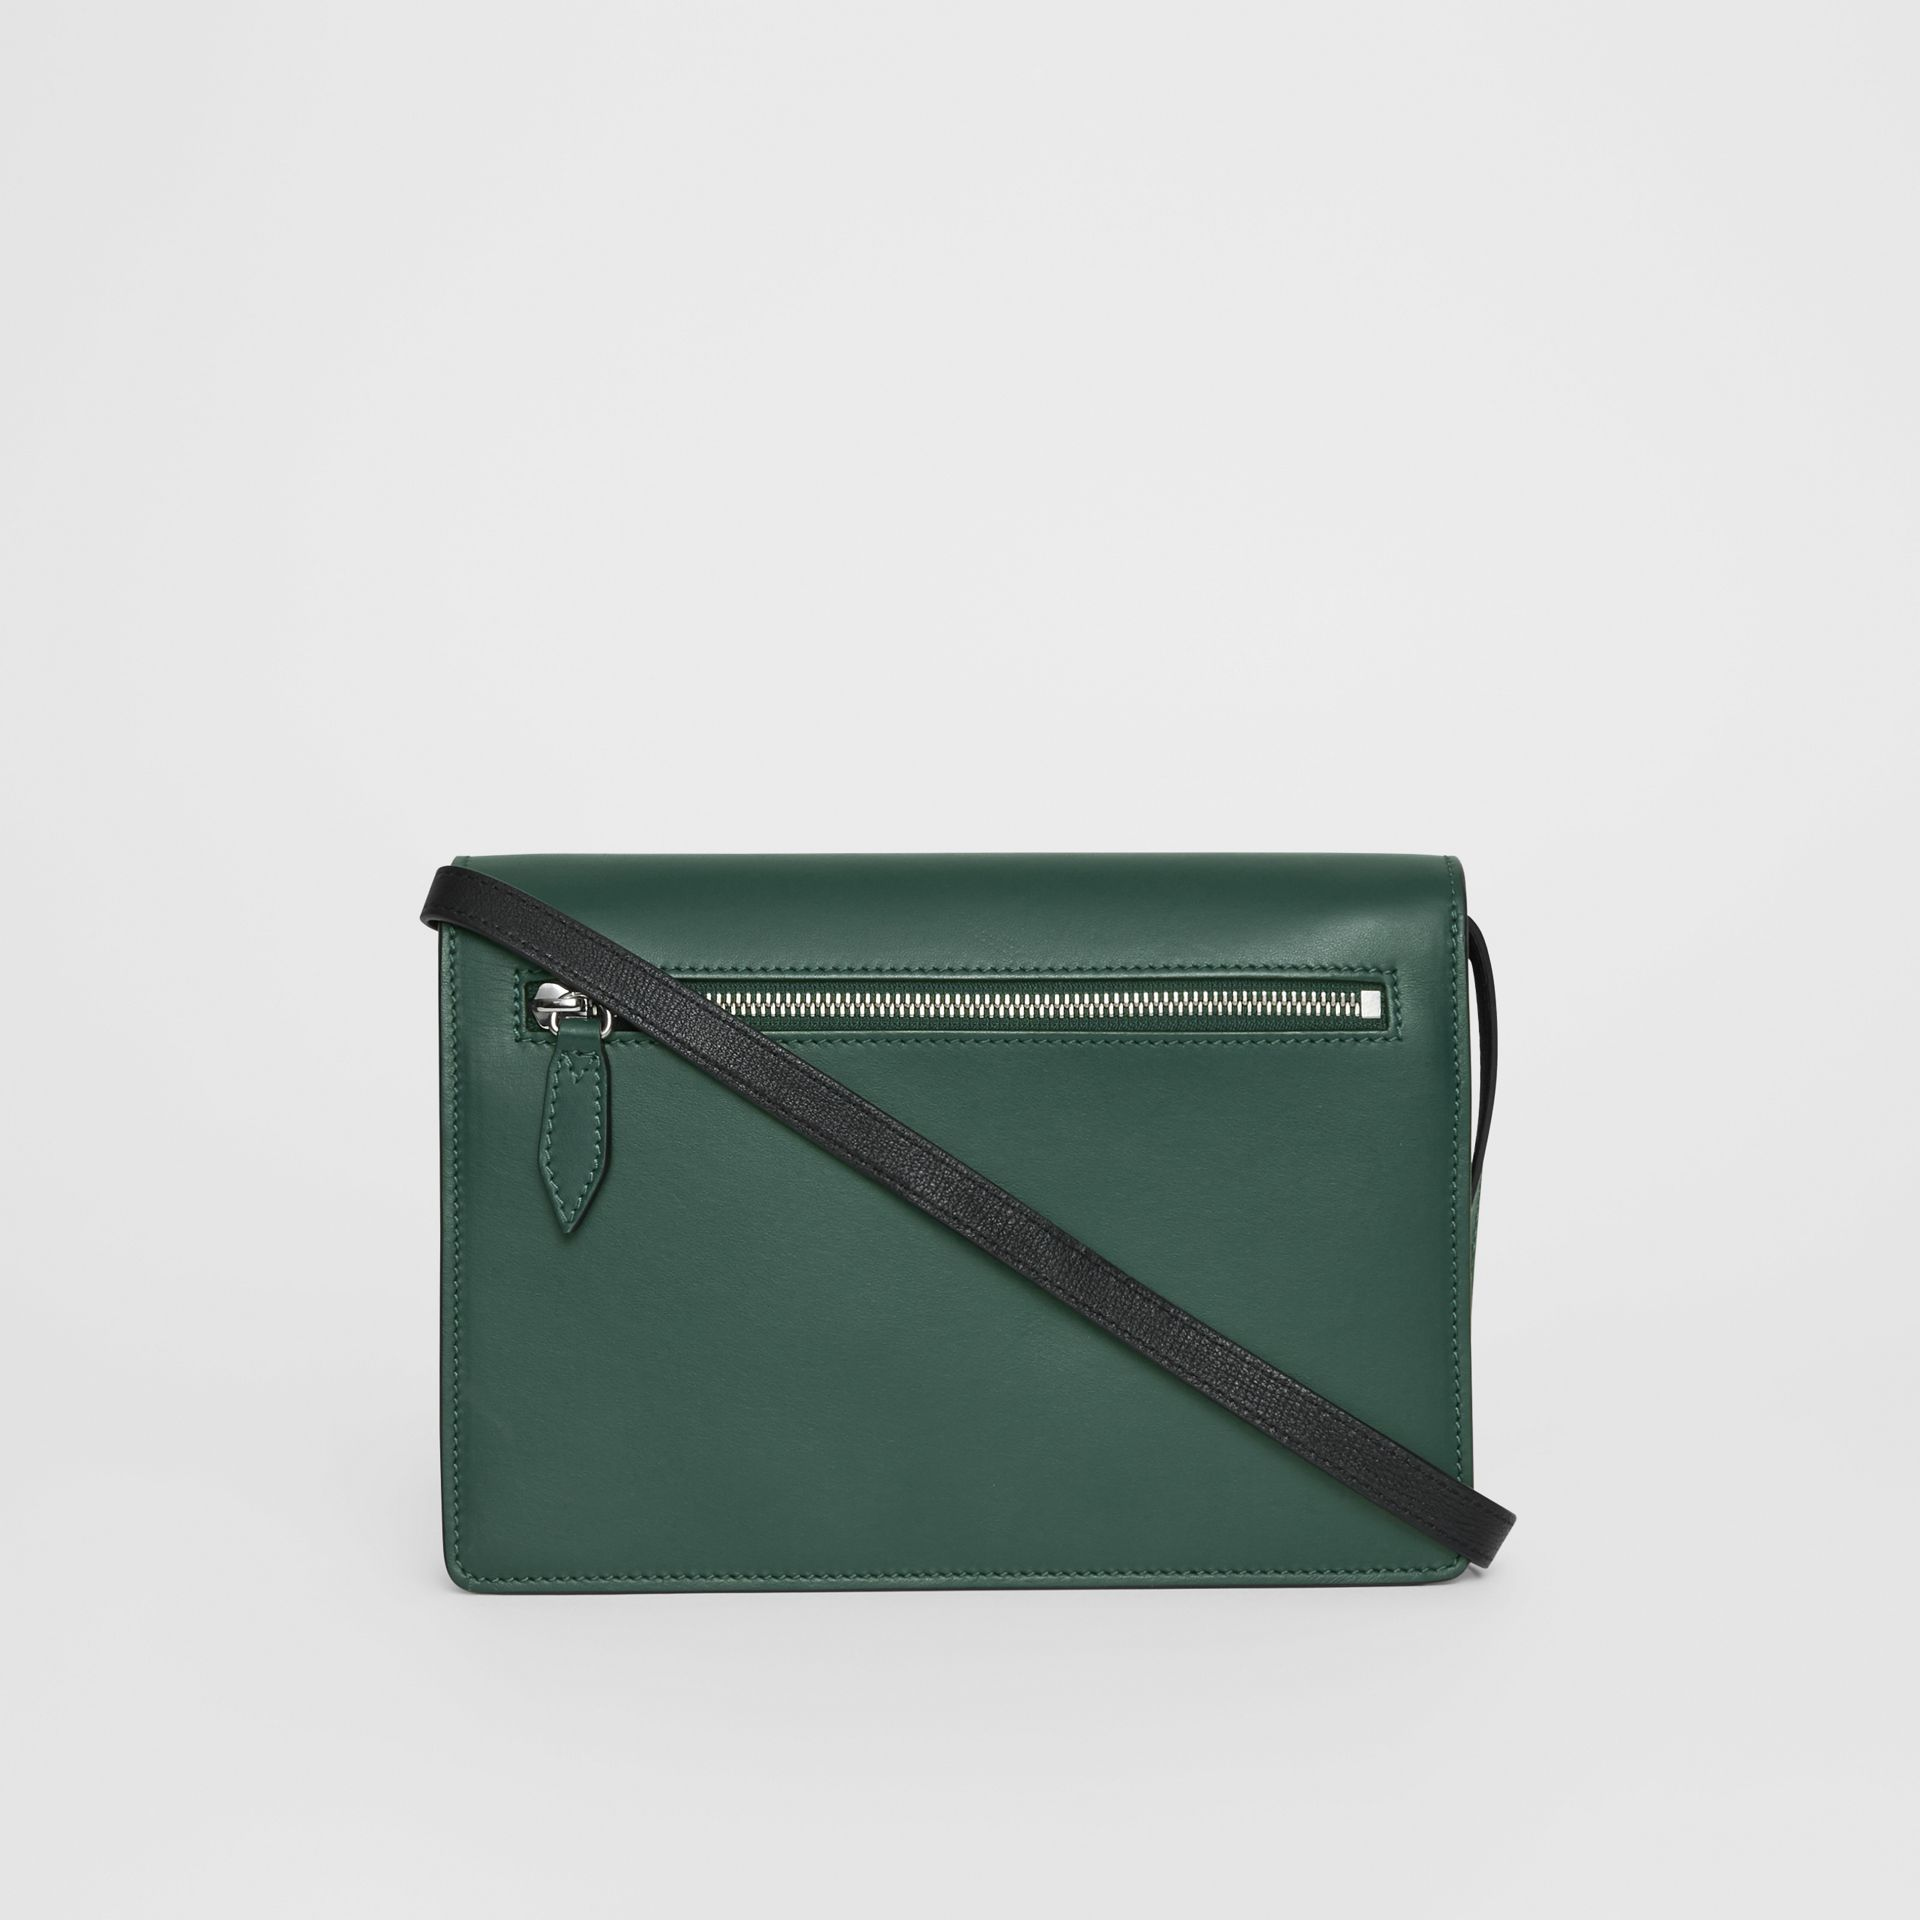 Two-tone Leather Crossbody Bag in Black/sea Green - Women | Burberry - gallery image 7